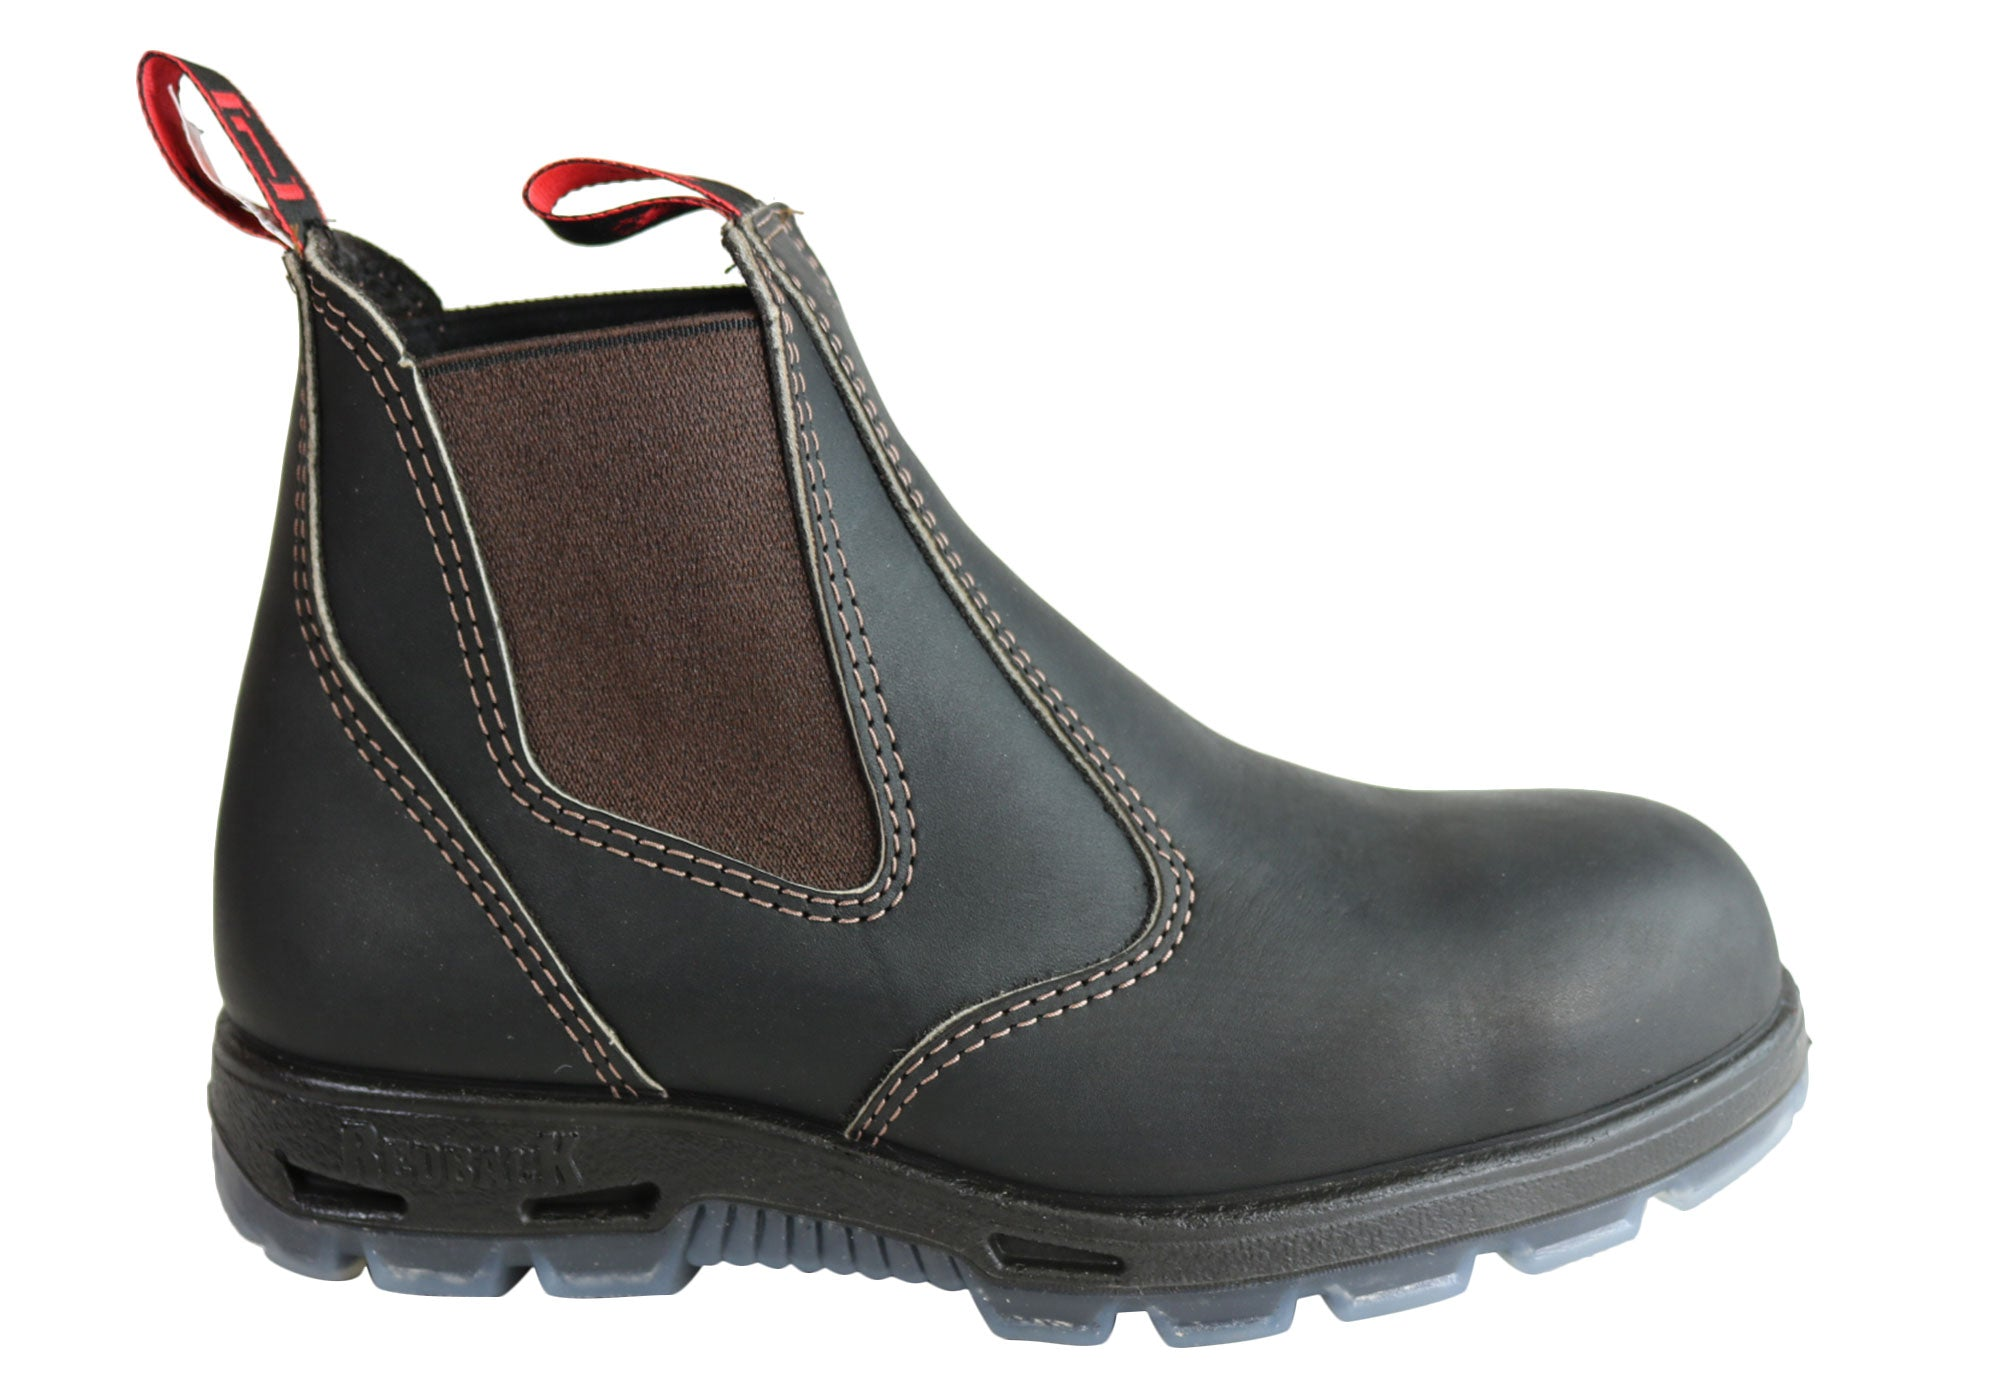 90f15101ae0 Redback Mens Bobcat Non Steel Cap Ubok Leather Work Boots | Brand ...